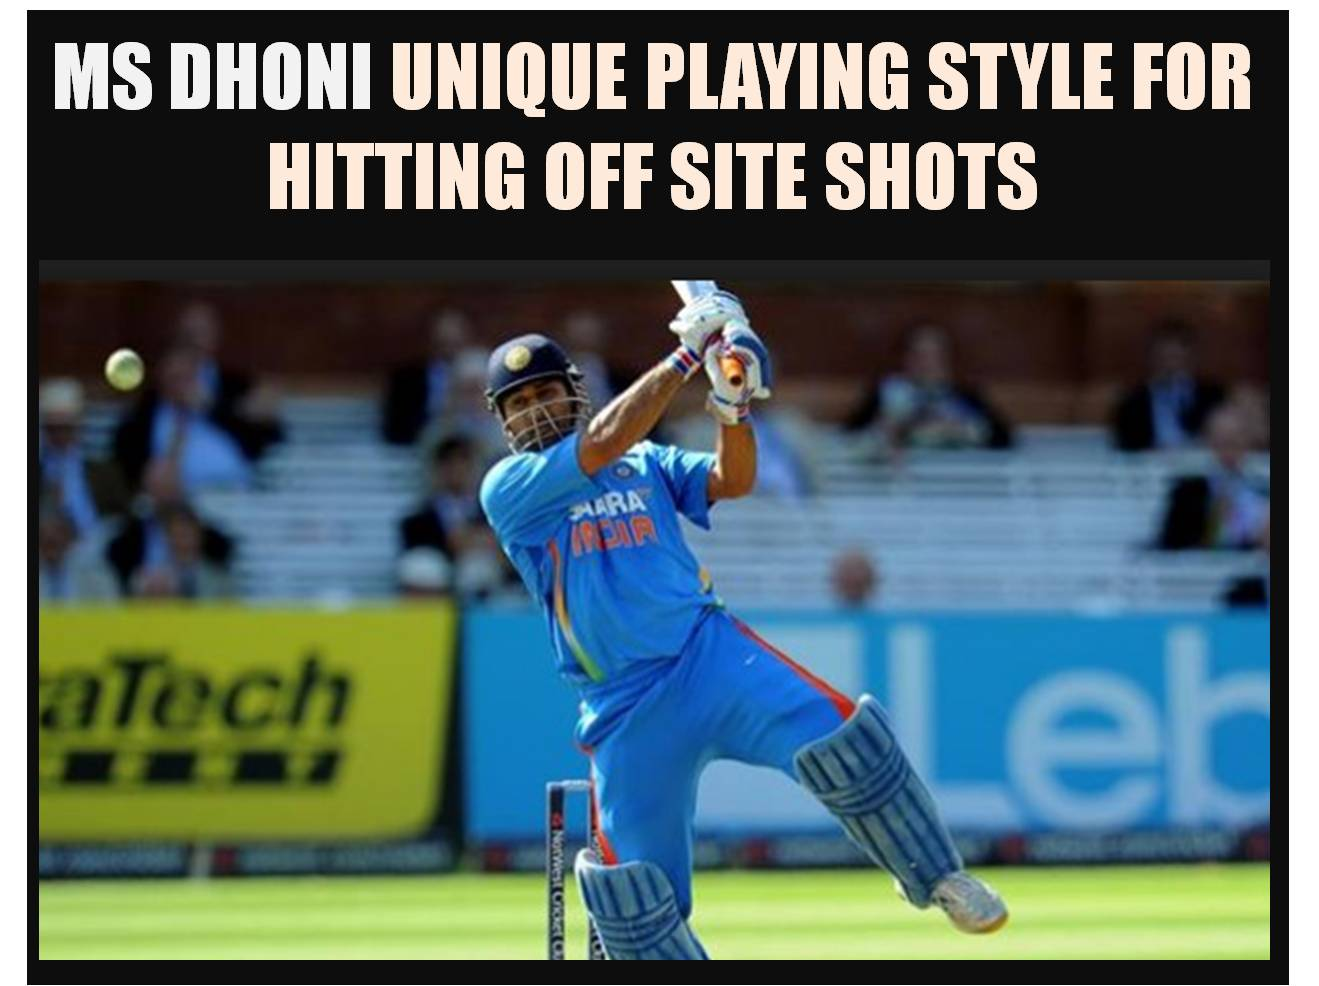 MSDhoni_Unique_Playing_Style_Khelmart1